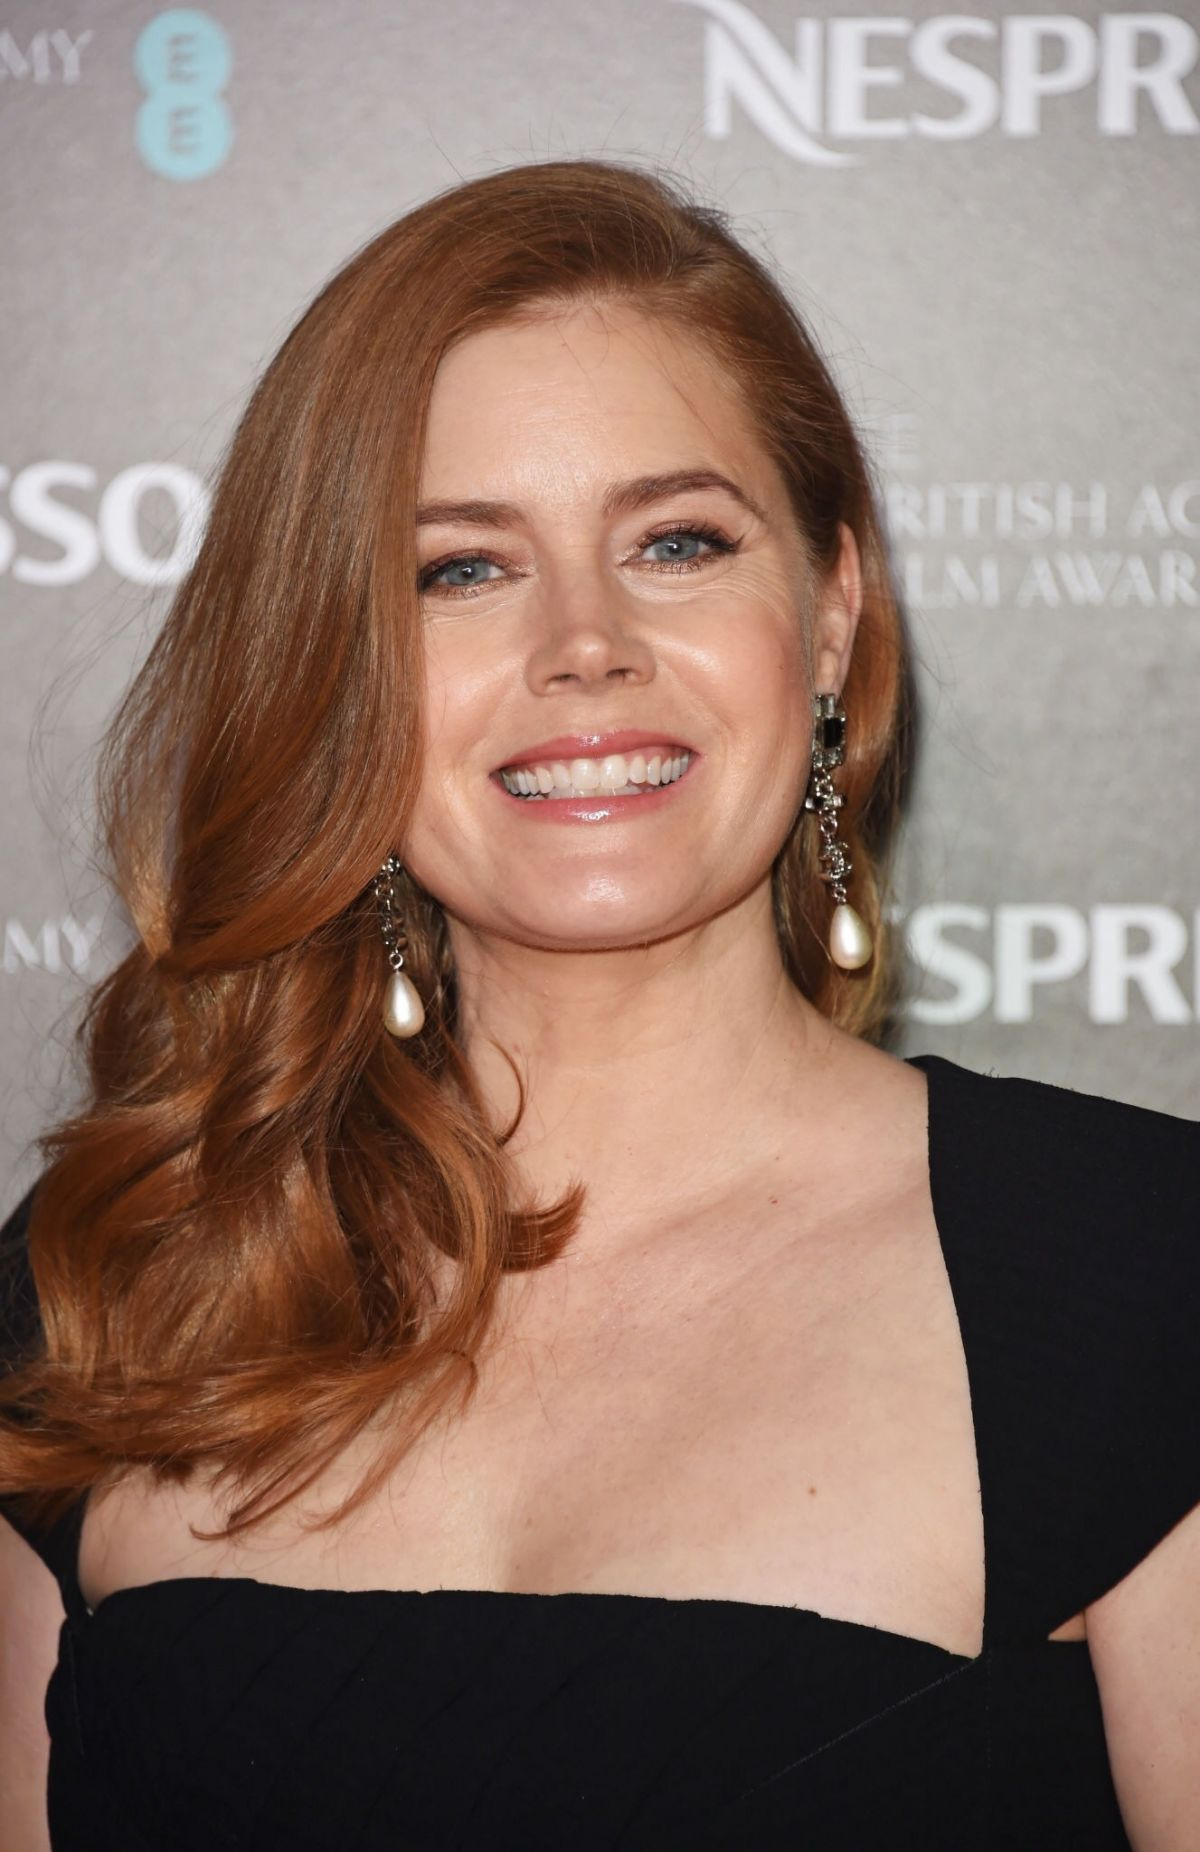 amy-adams-at-nespresso-bafta-nominees-party-in-london-02-09-2019-9.jpg